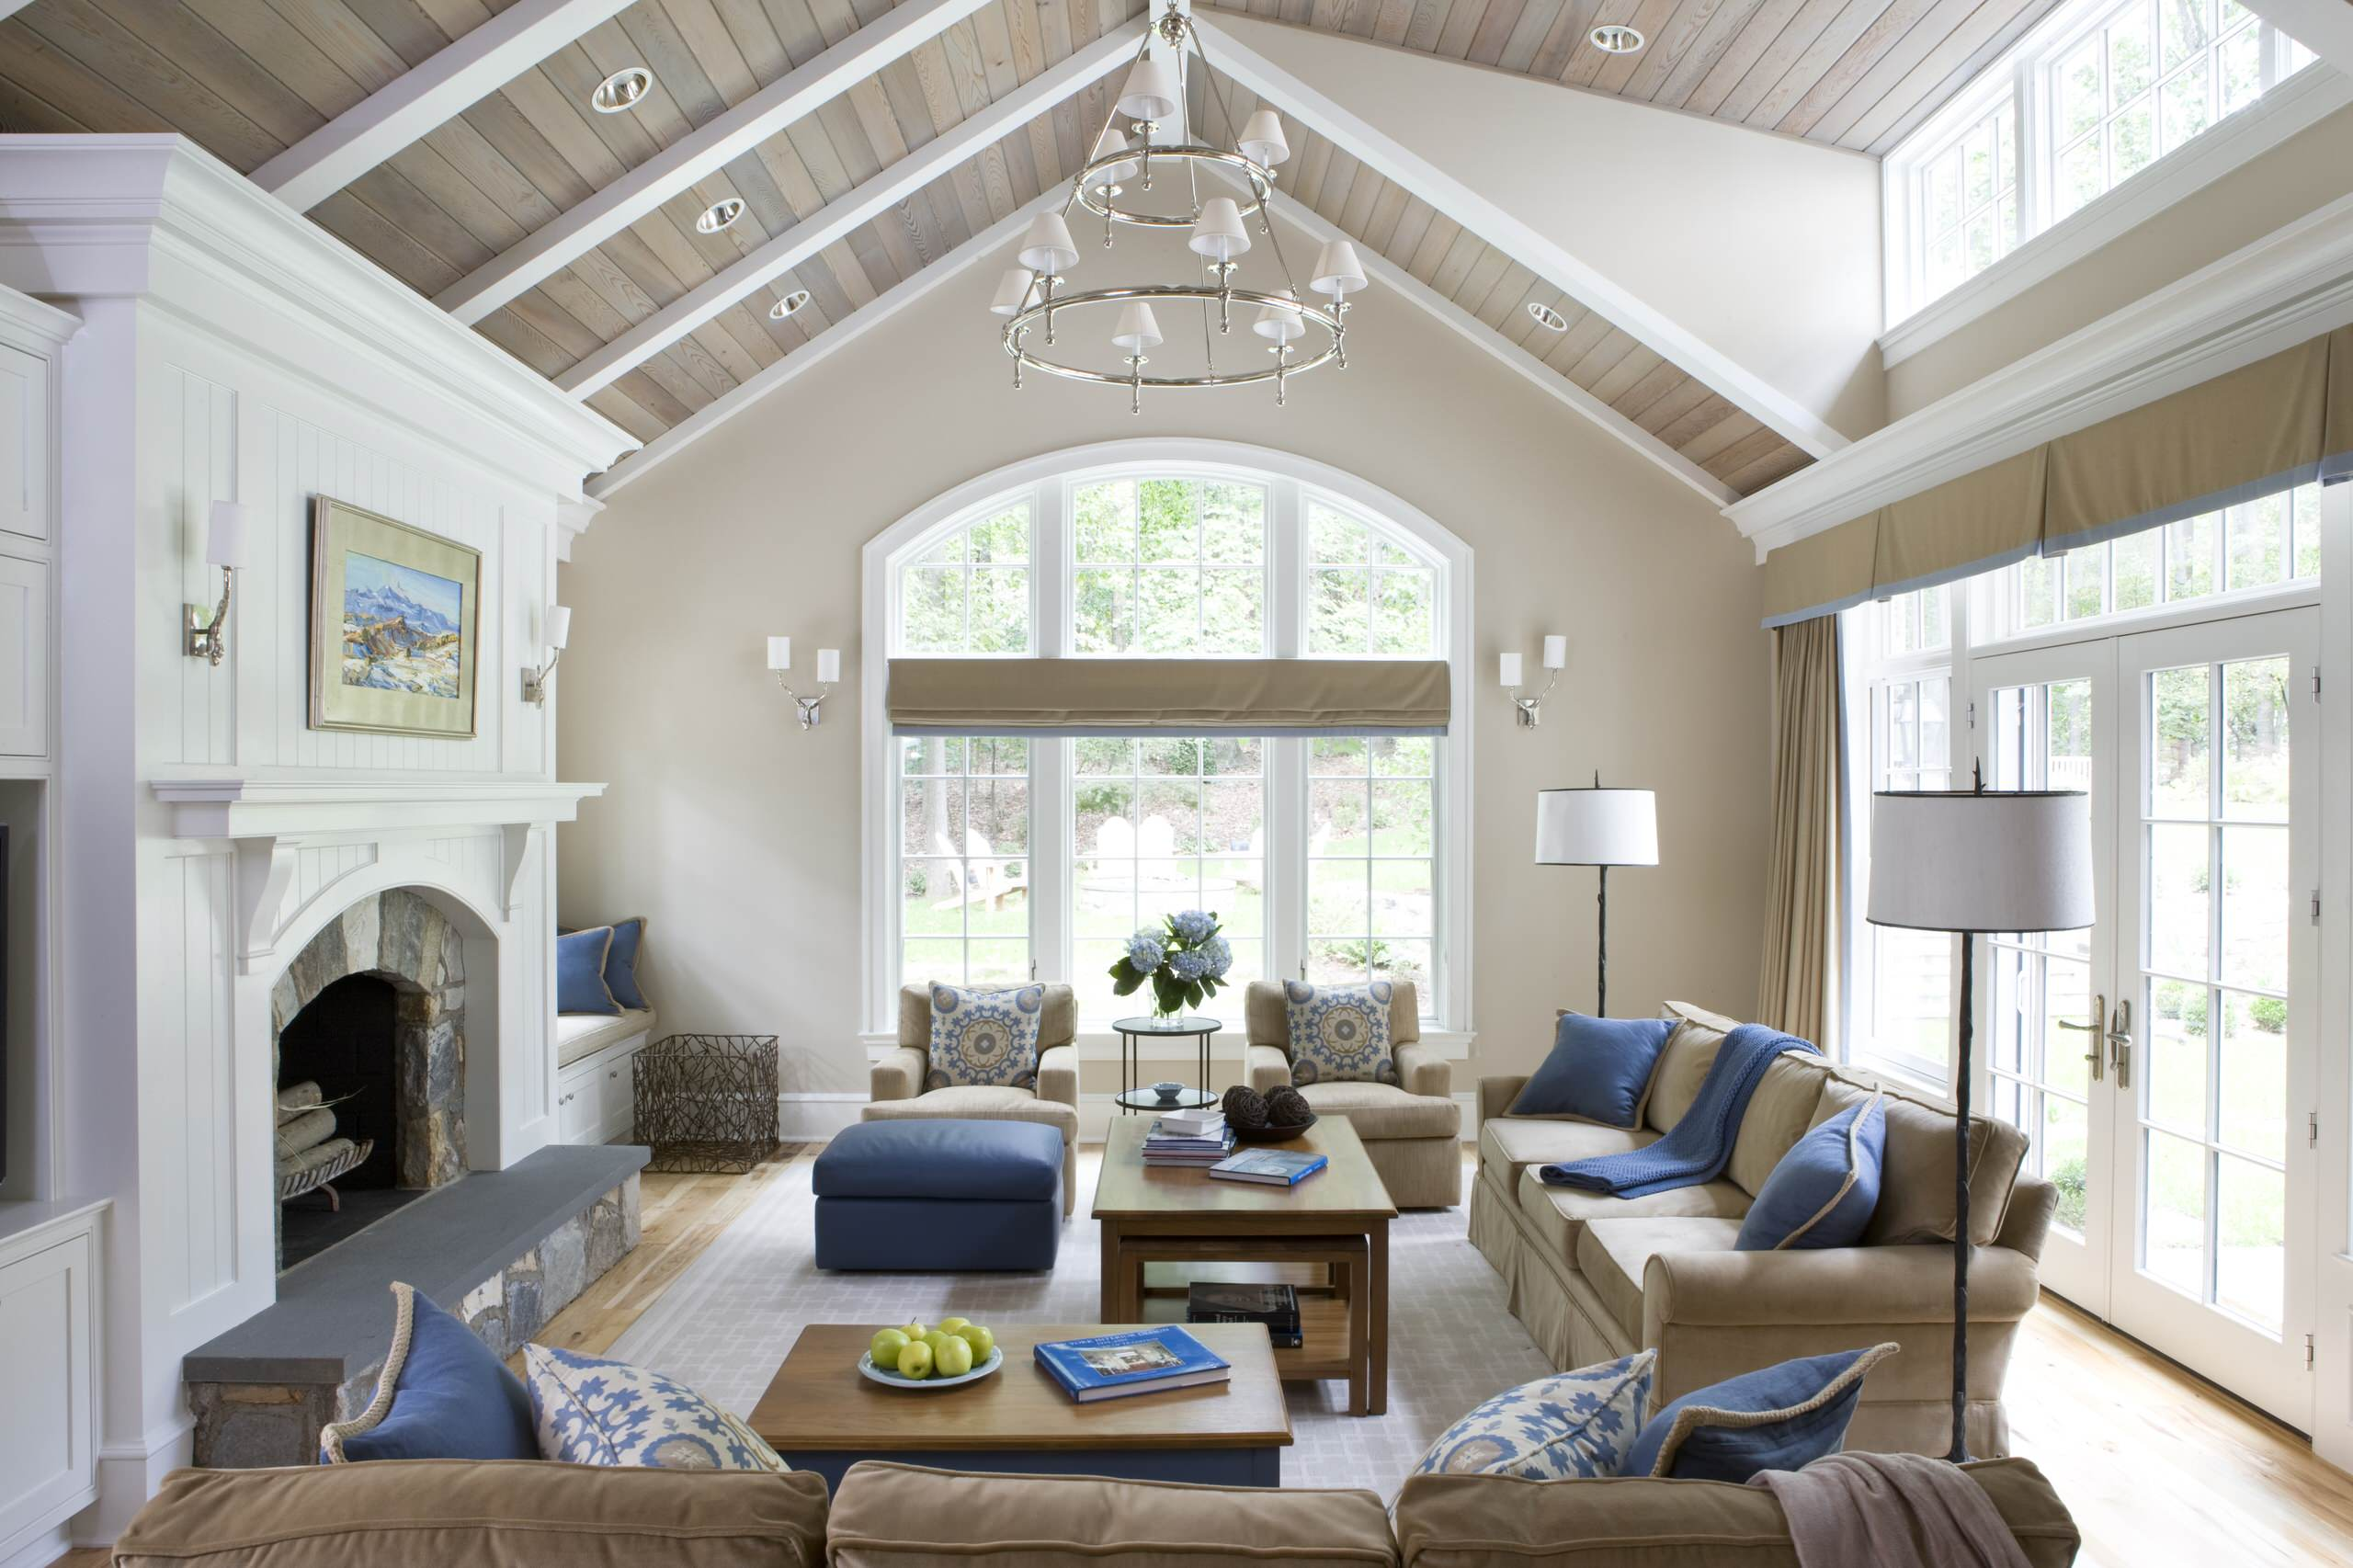 75 Beautiful Living Room Pictures Ideas December 2020 Houzz